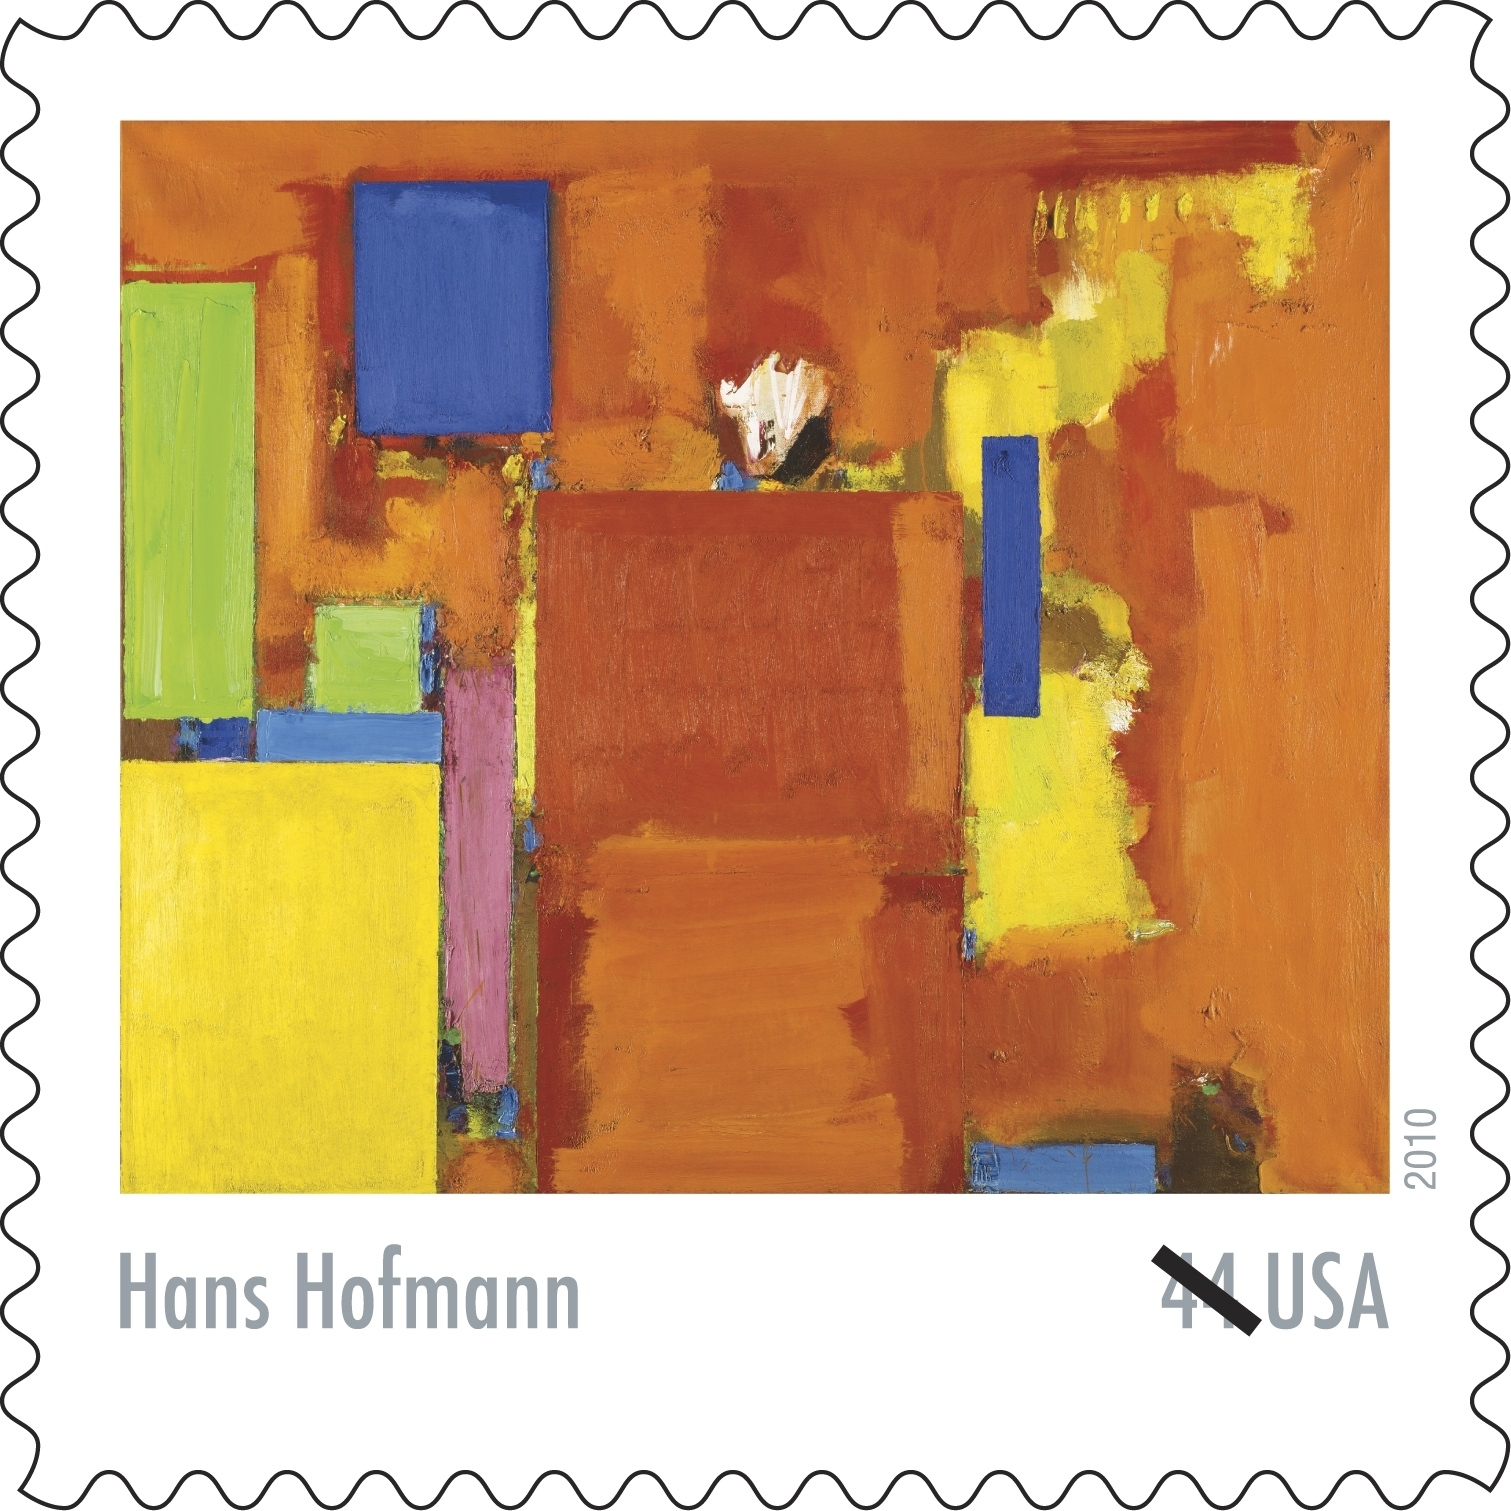 The Art Story: Artist - Hans Hofmann